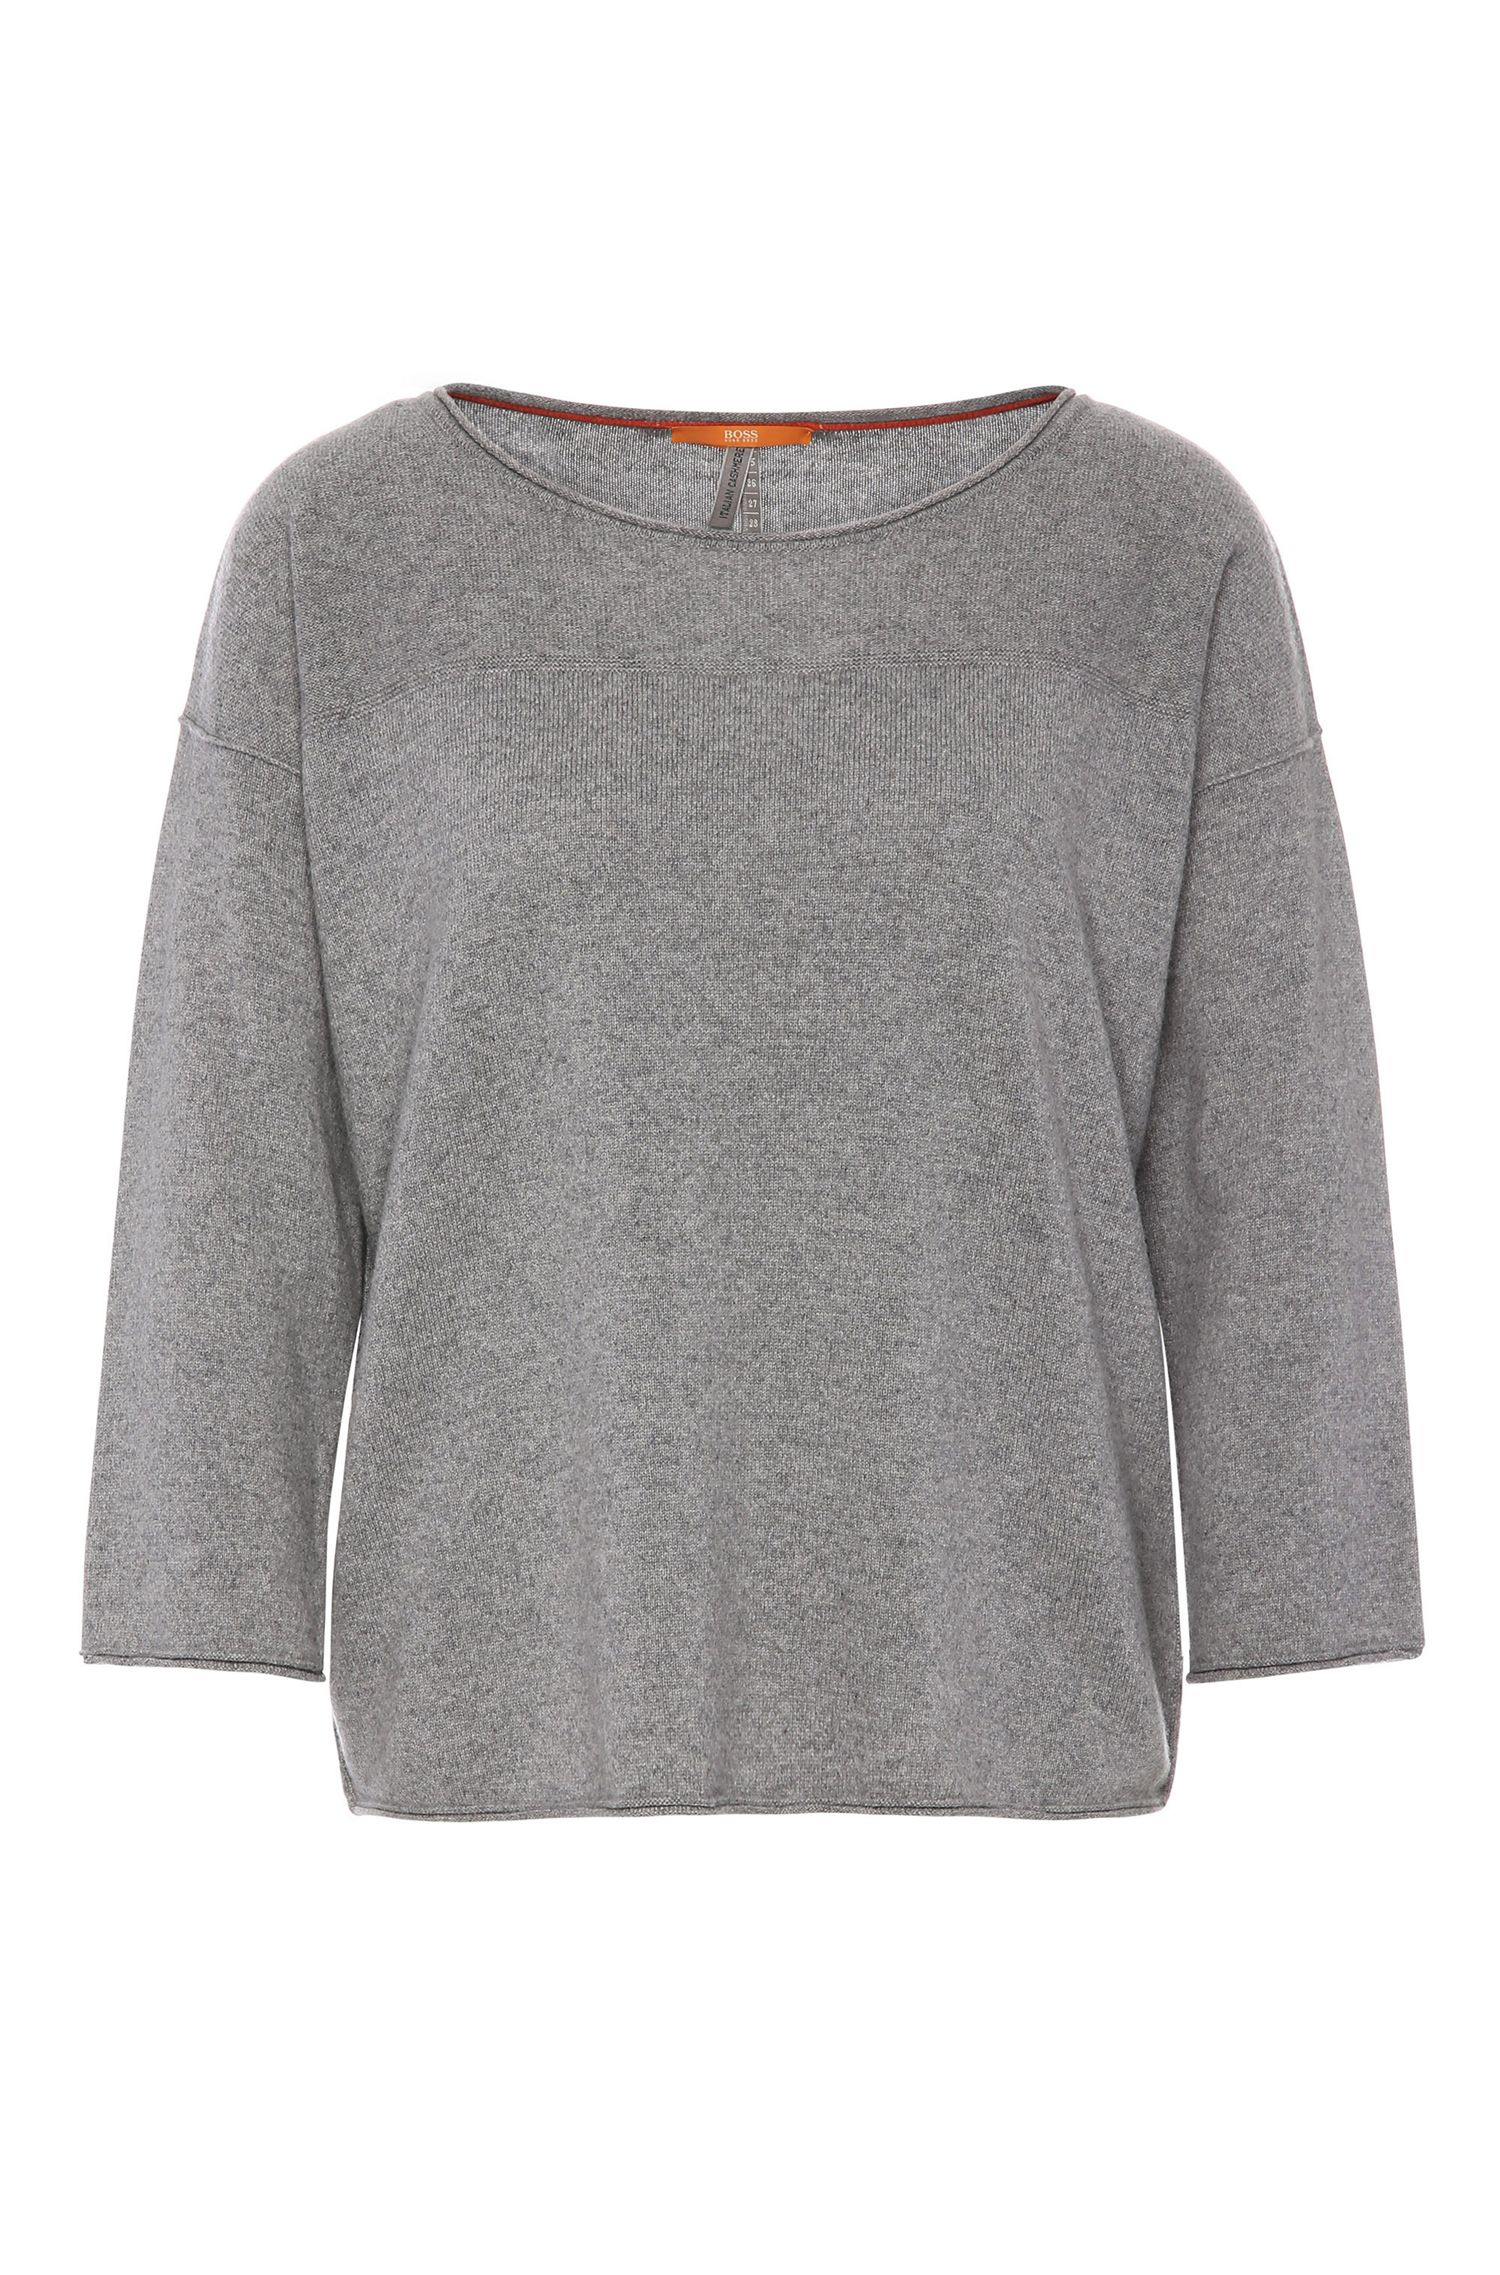 Relaxed-fit sweater in cashmere blend with wool: 'Wemilia'